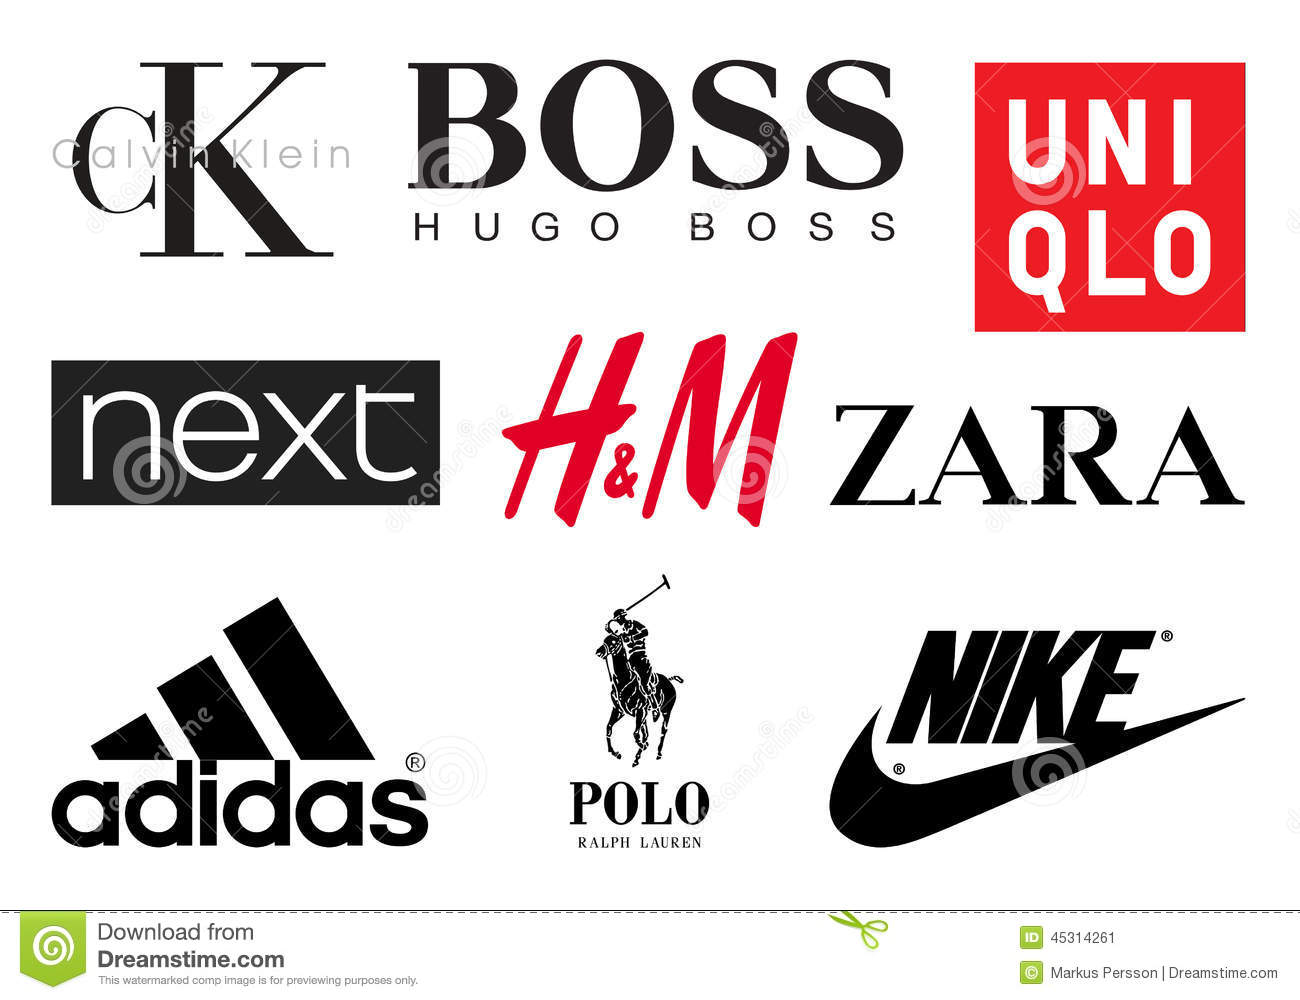 Fashion Companies Based In New Jersey